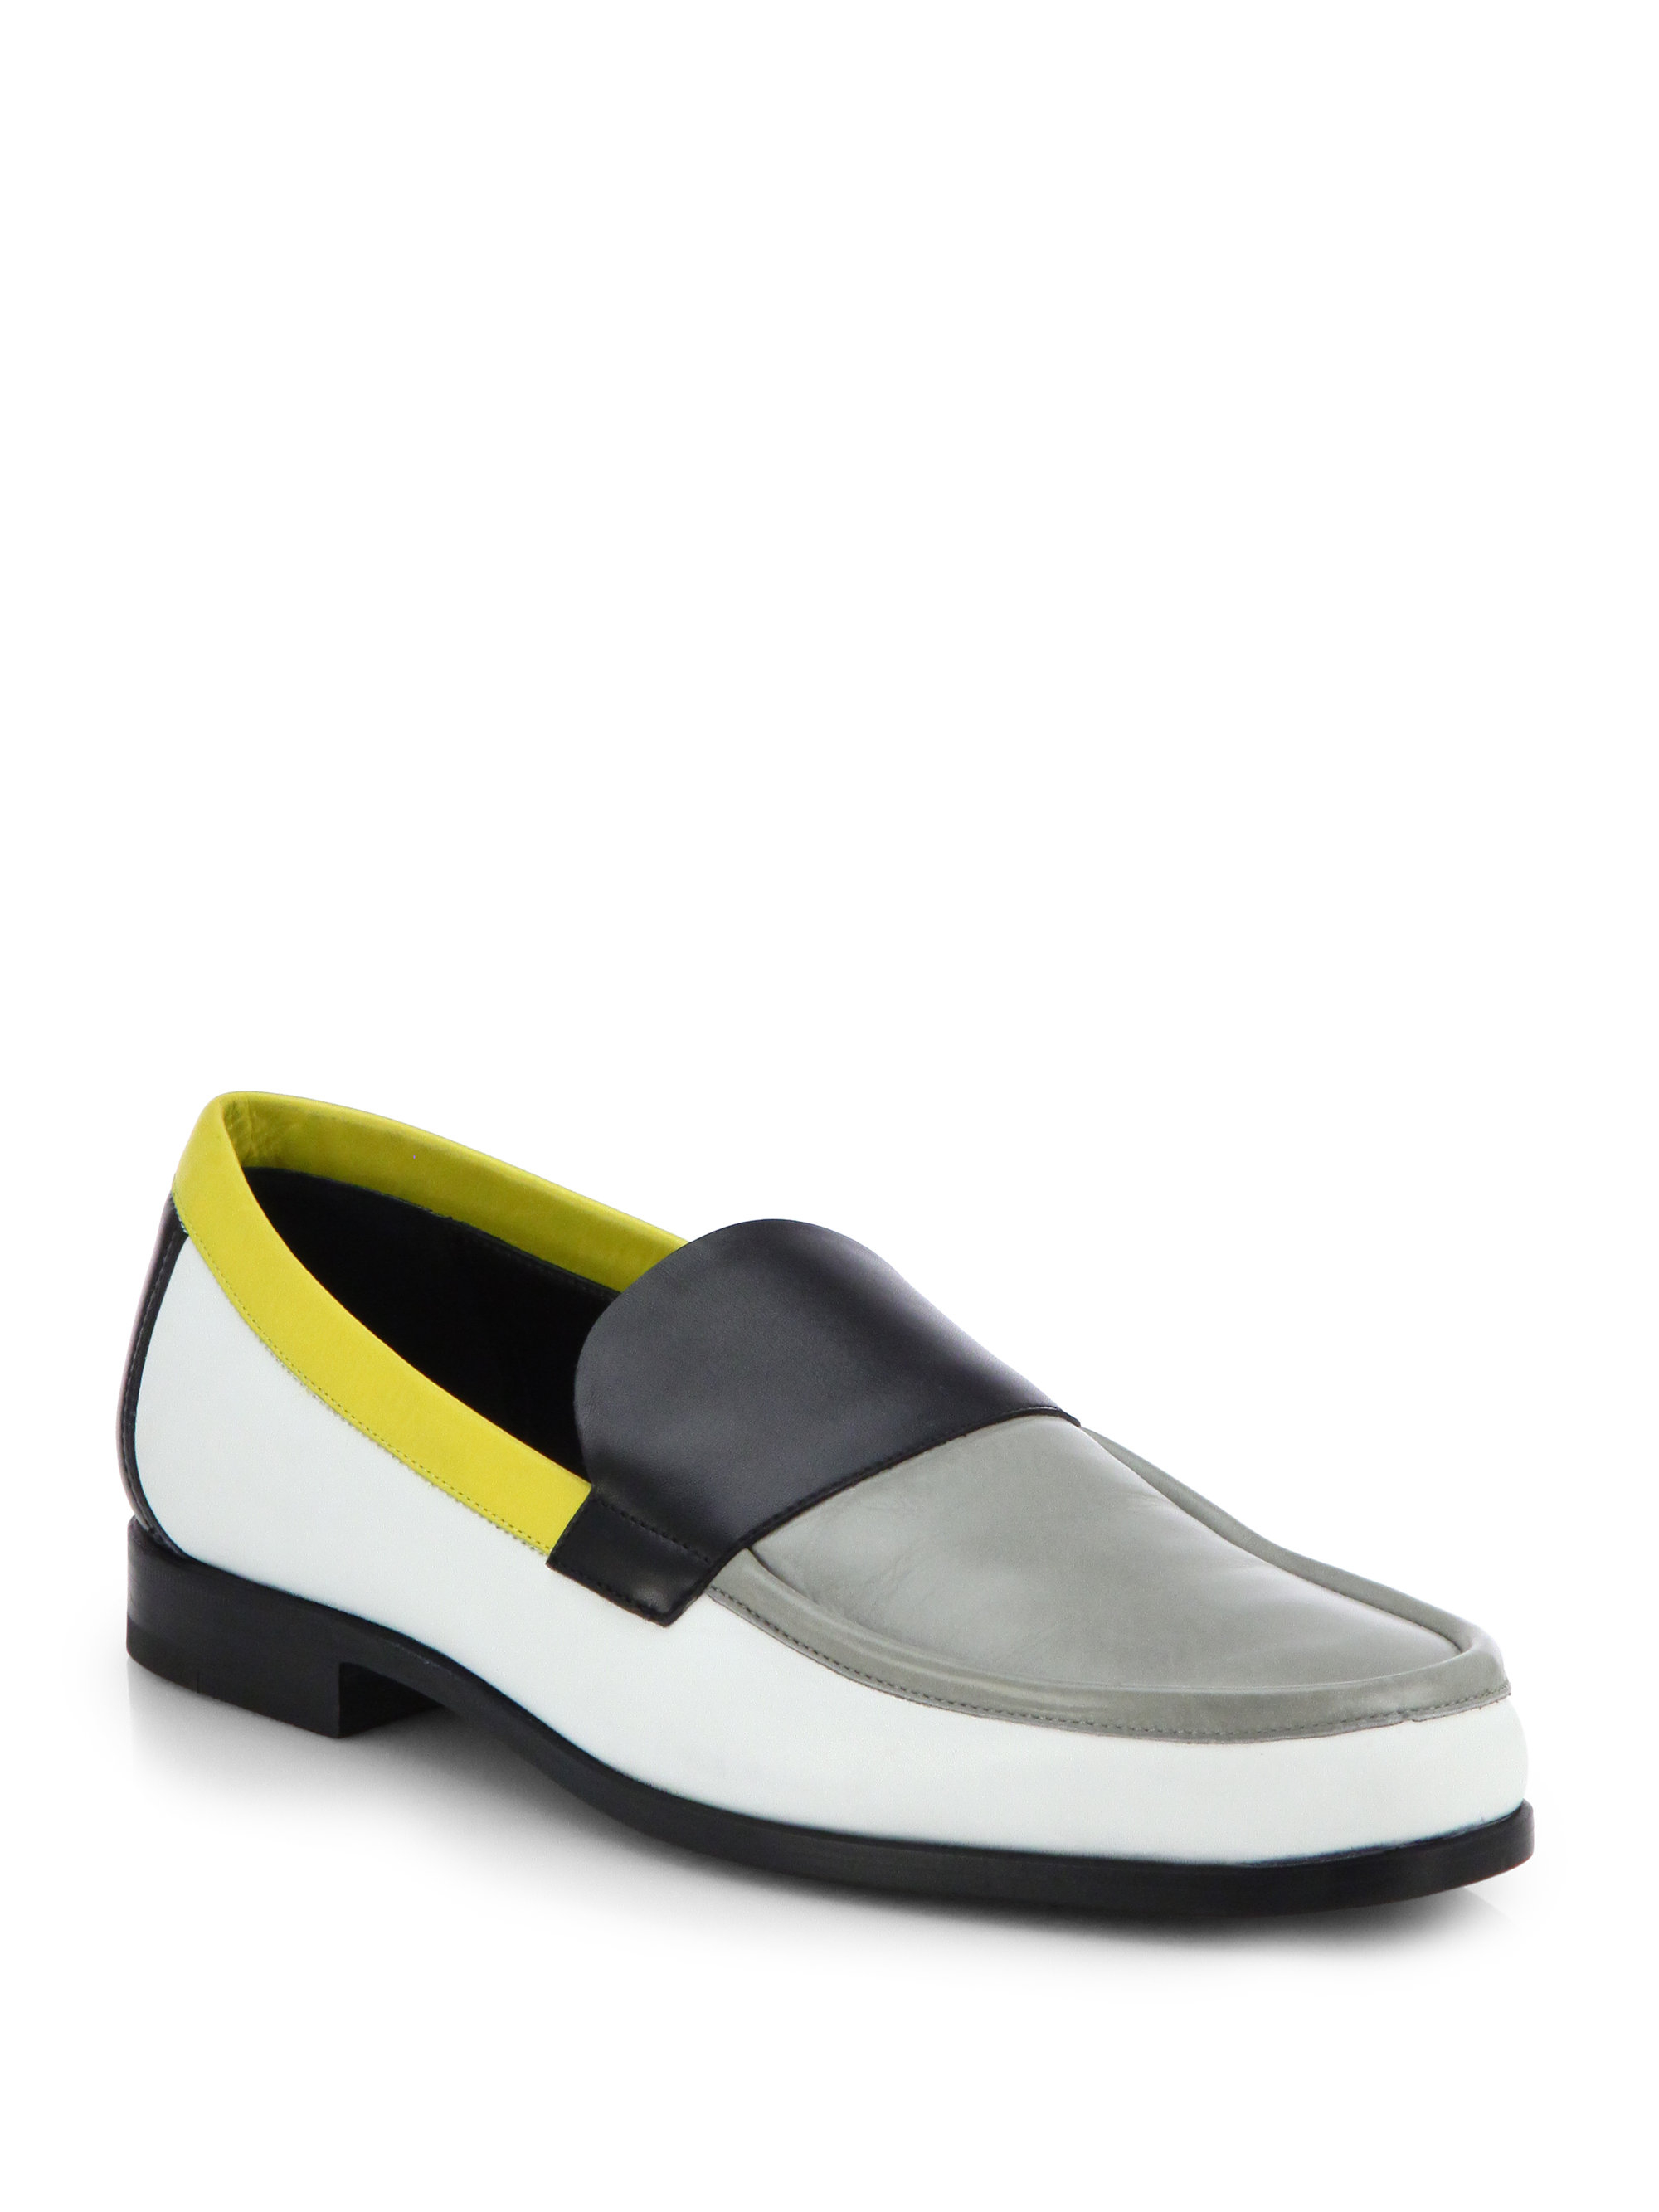 Lyst Pierre Hardy Leather Multicolored Loafers In Yellow